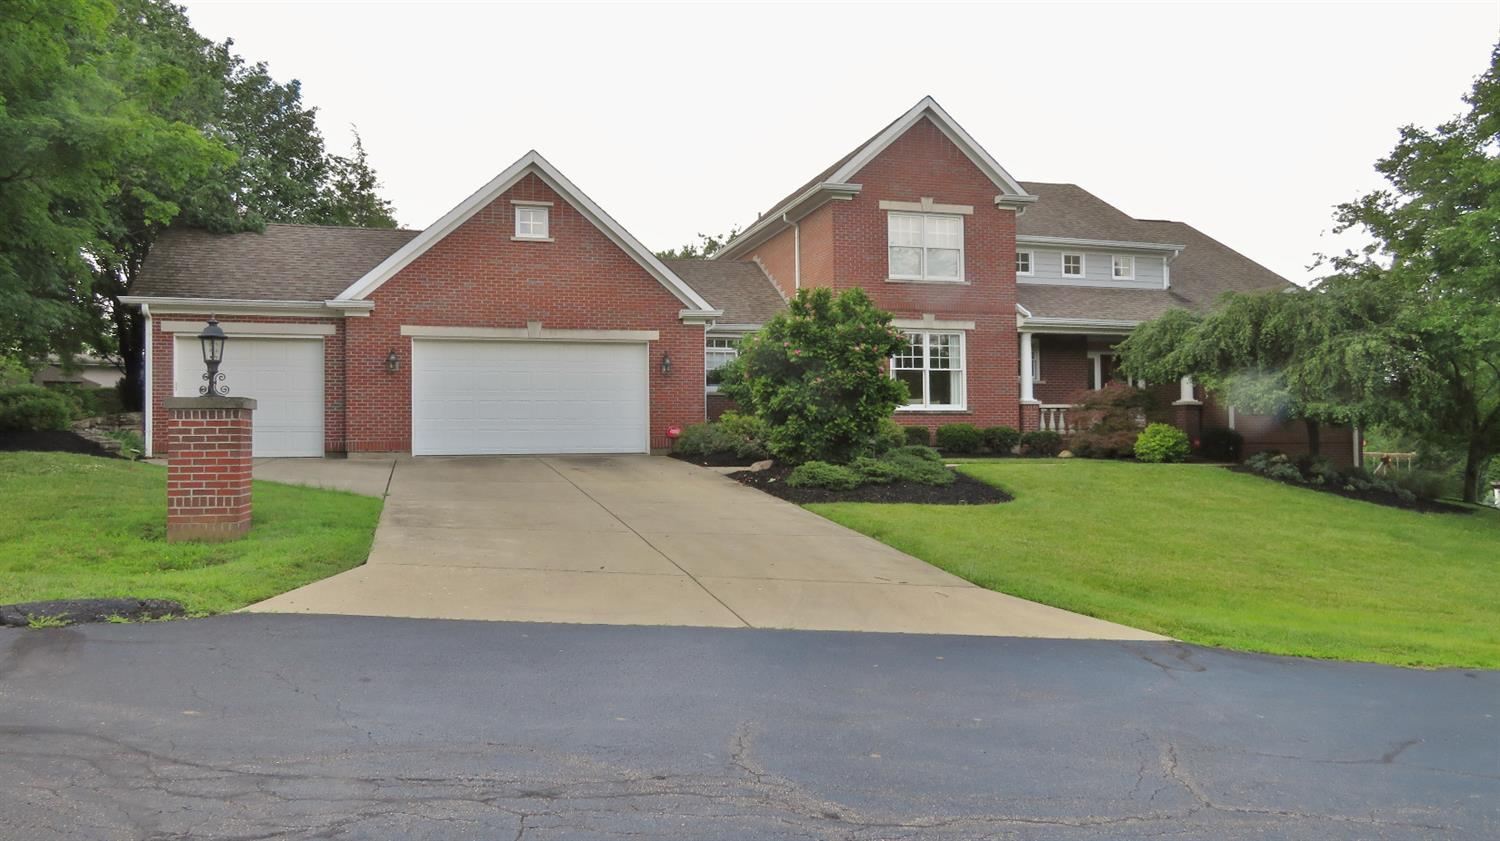 3800 Lincoln Dr White Oak, OH